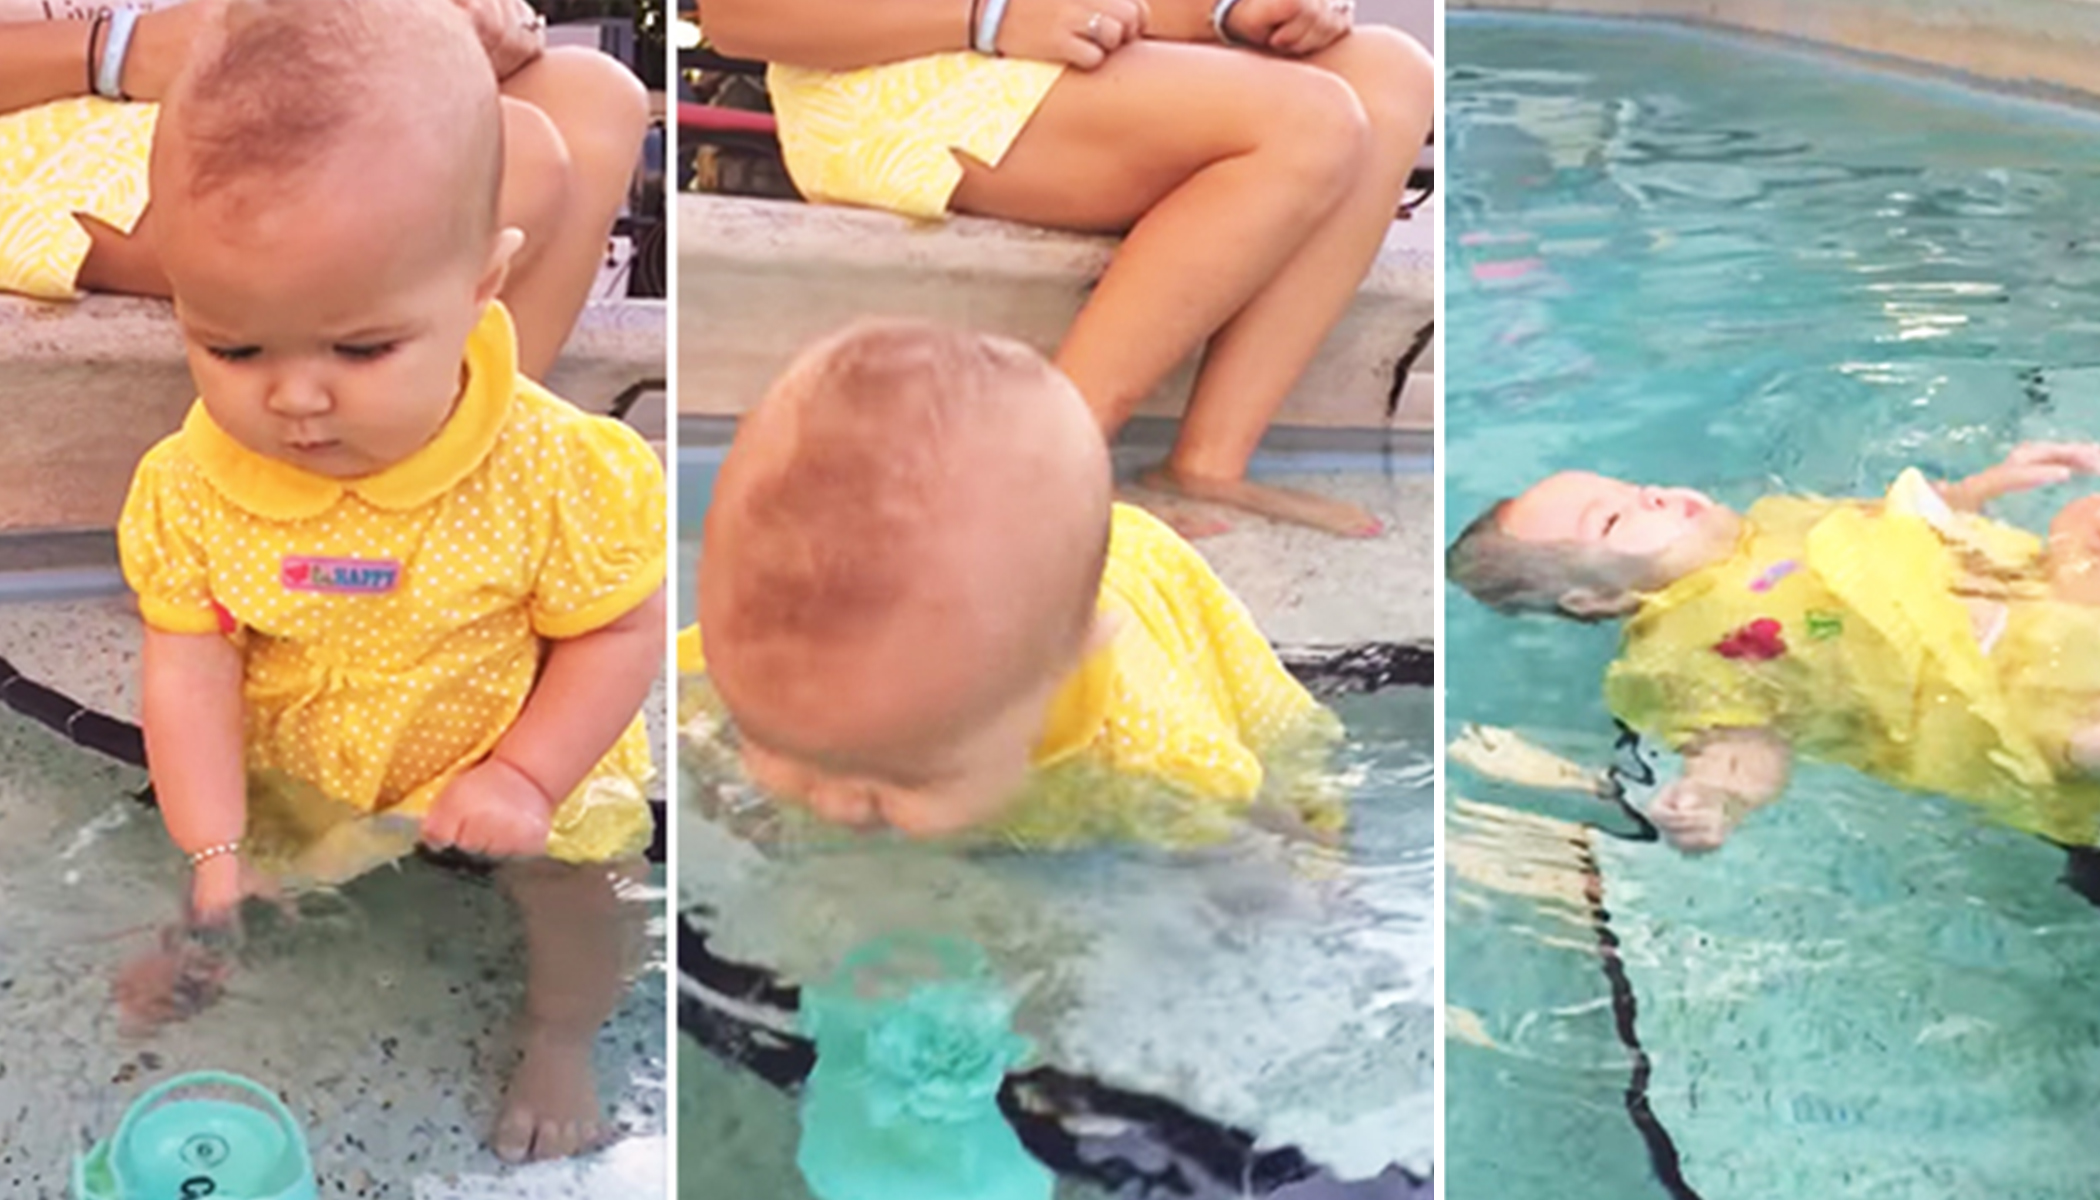 Mom Blasted for Letting Baby Fall Into Pool, Then She Reveals the Sad Truth